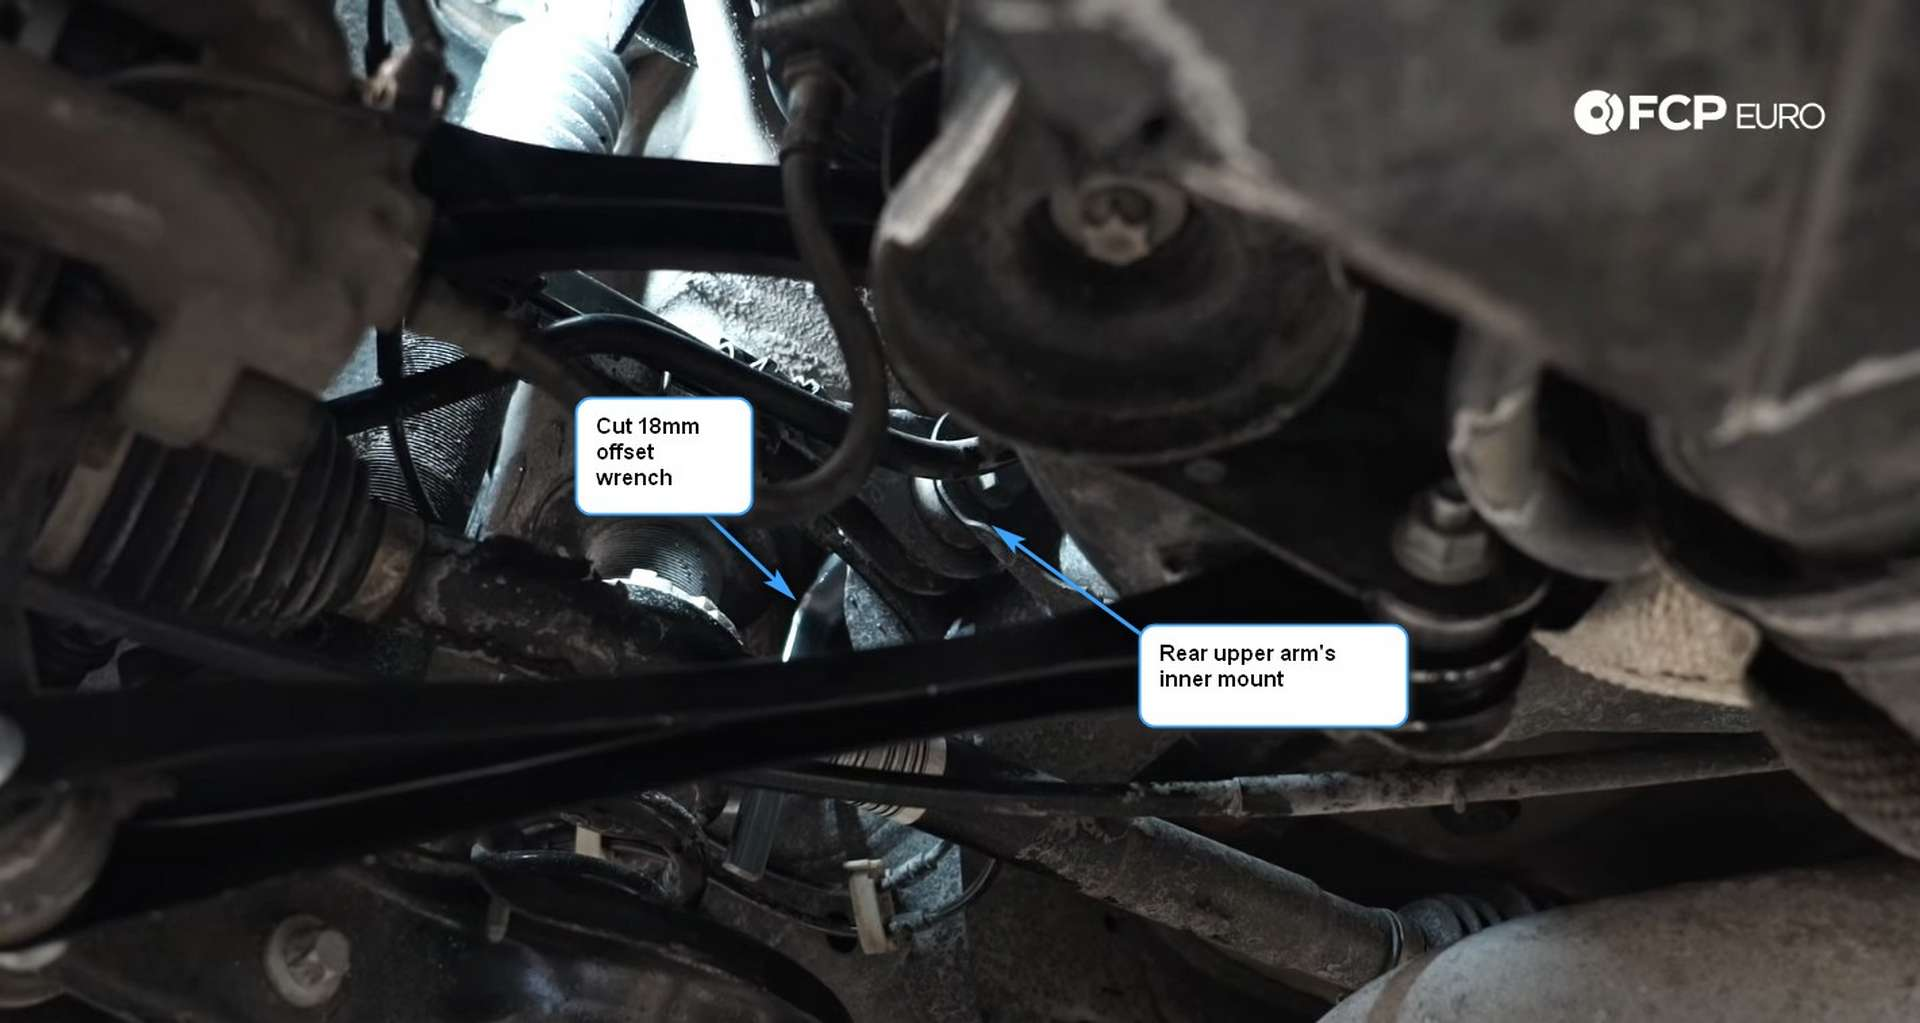 DIY BMW F30 Rear Control Arm Replacement rear upper arm's inner mount with the cut wrench